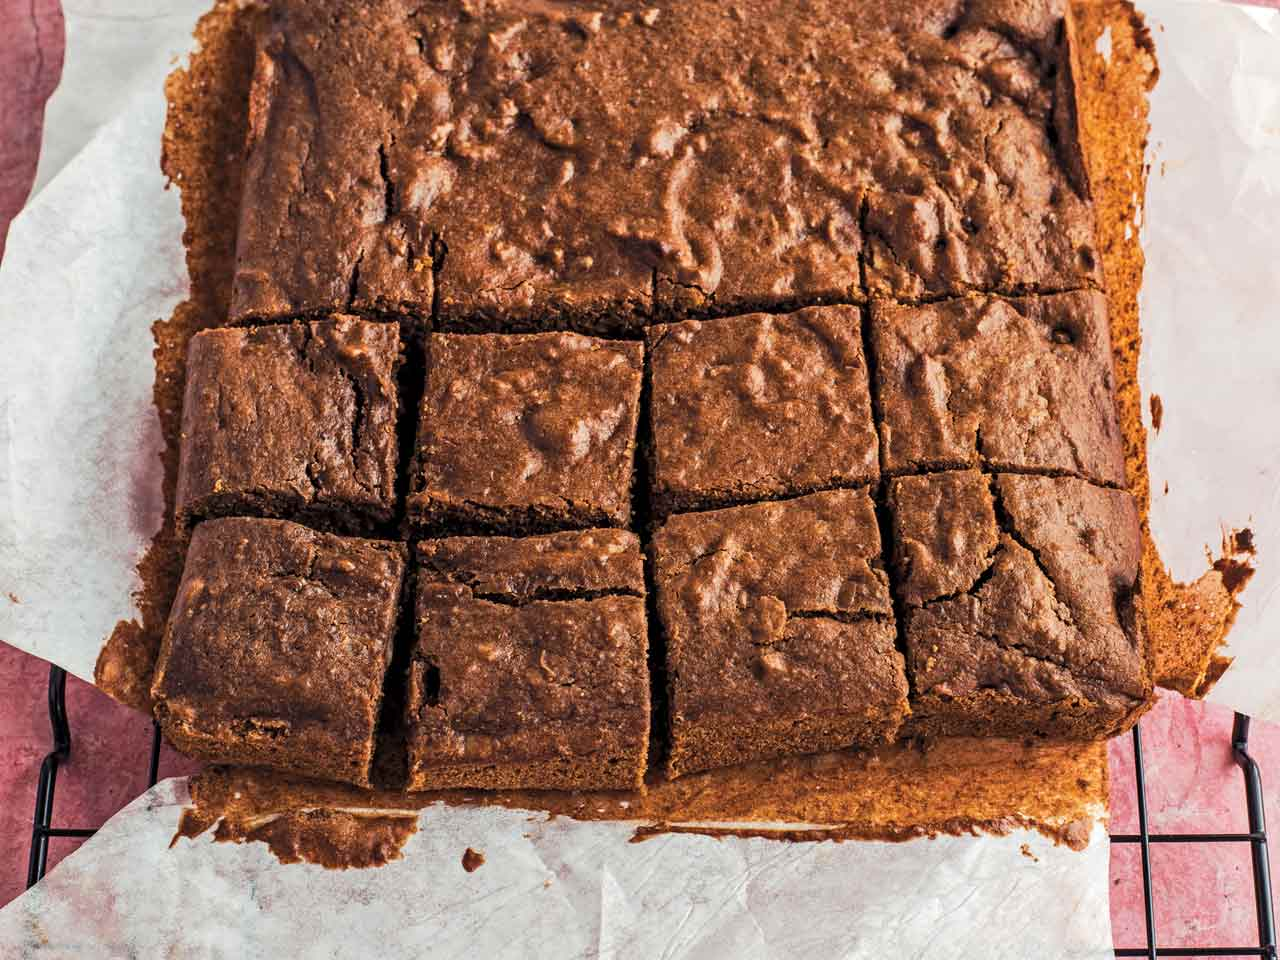 Sugar-free brownie